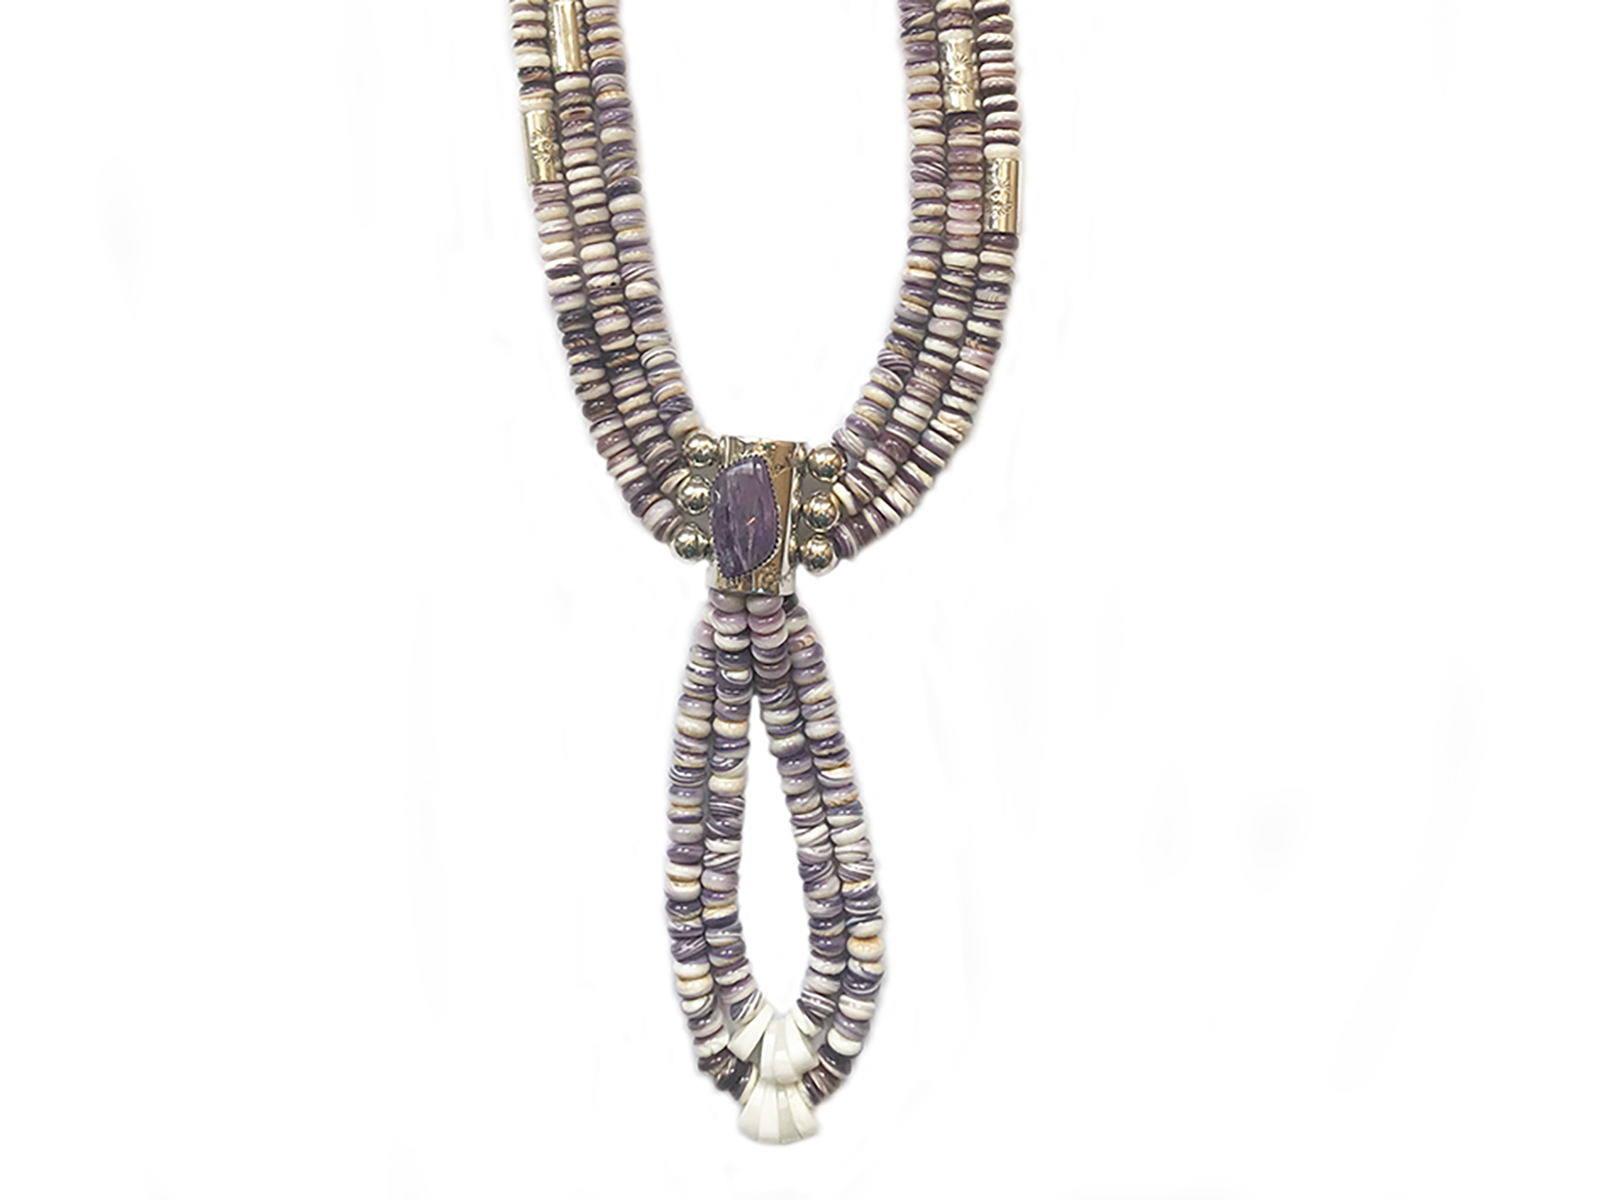 This stunning traditional Charolite Necklace